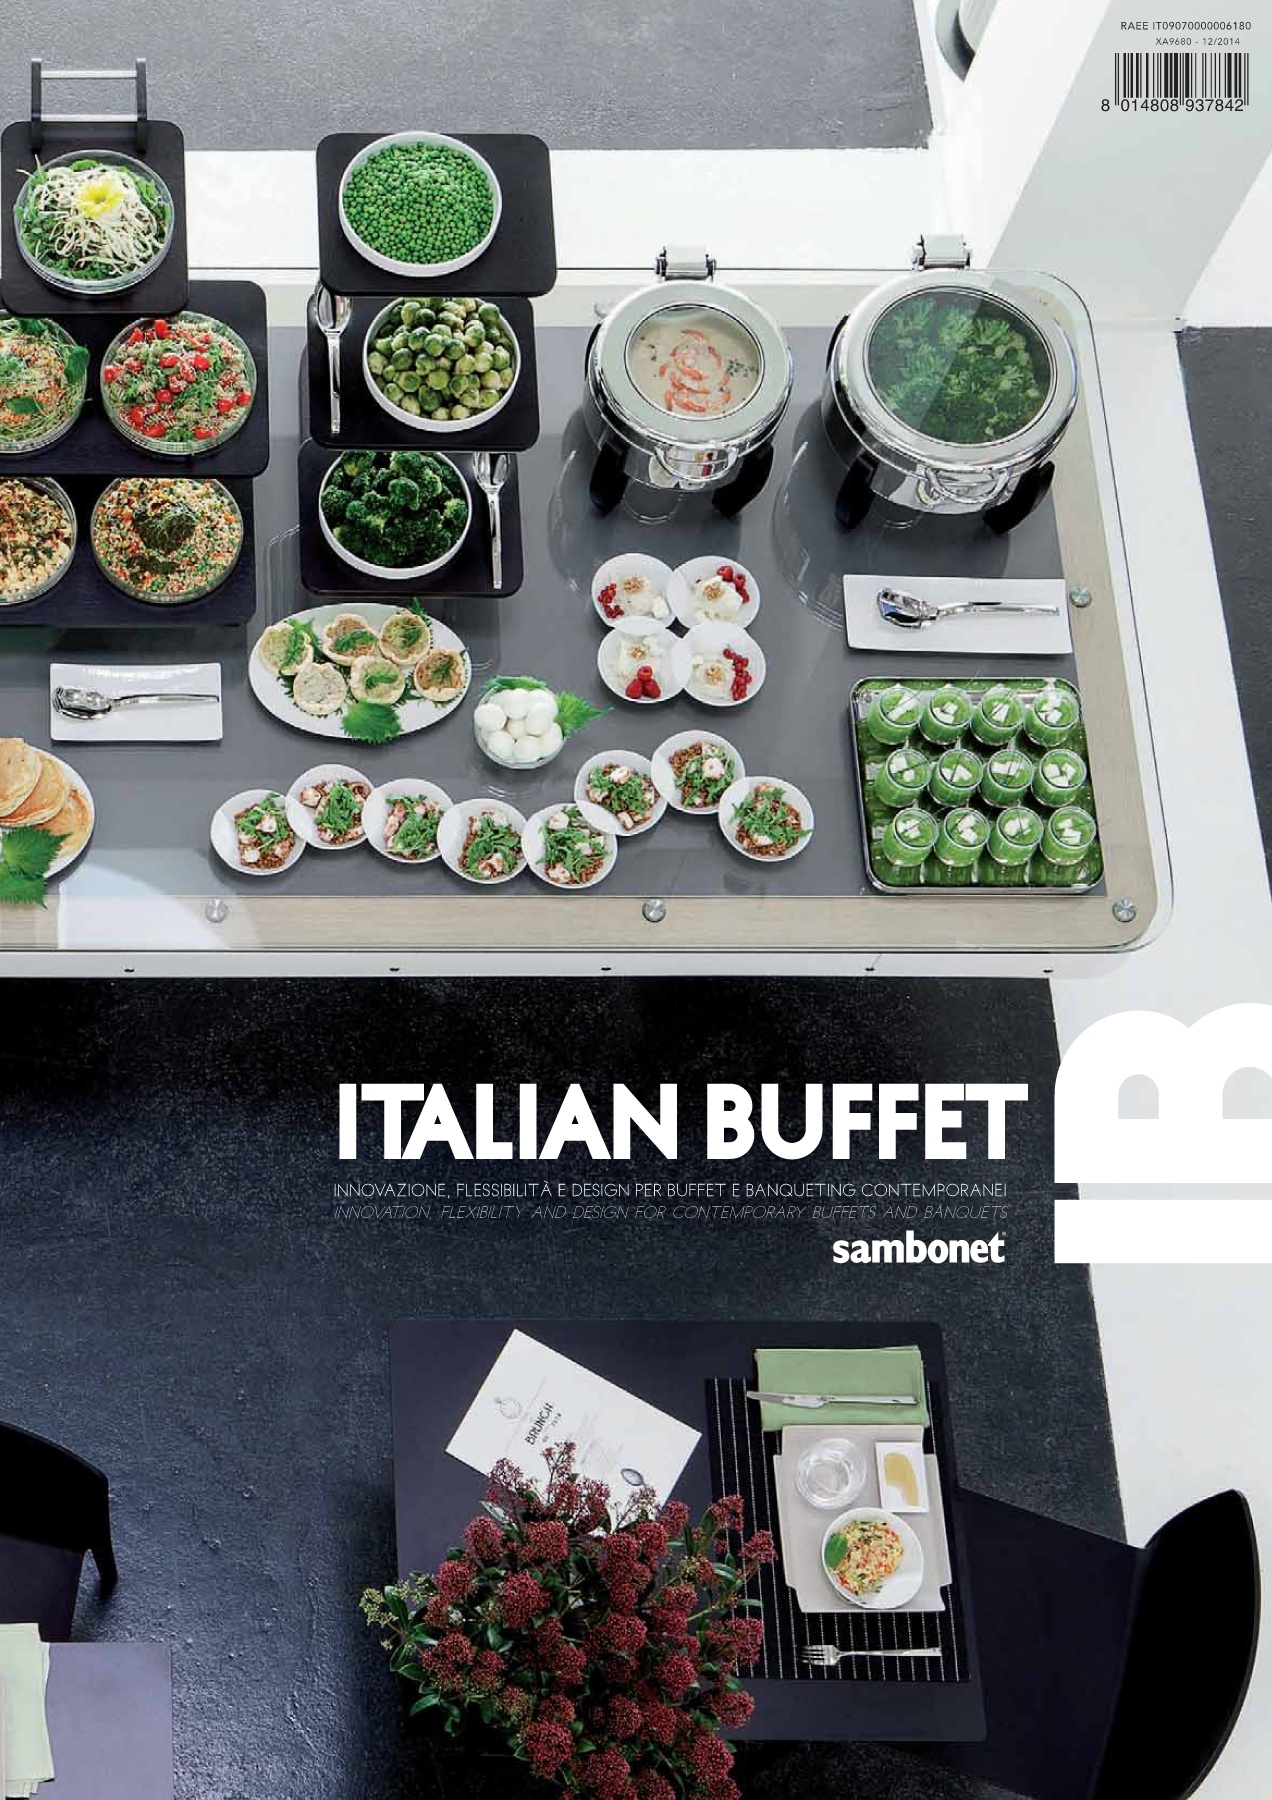 Tagliere Tiers Sambonet Italian Buffet Catalog 2018 Pages 1 20 Text Version